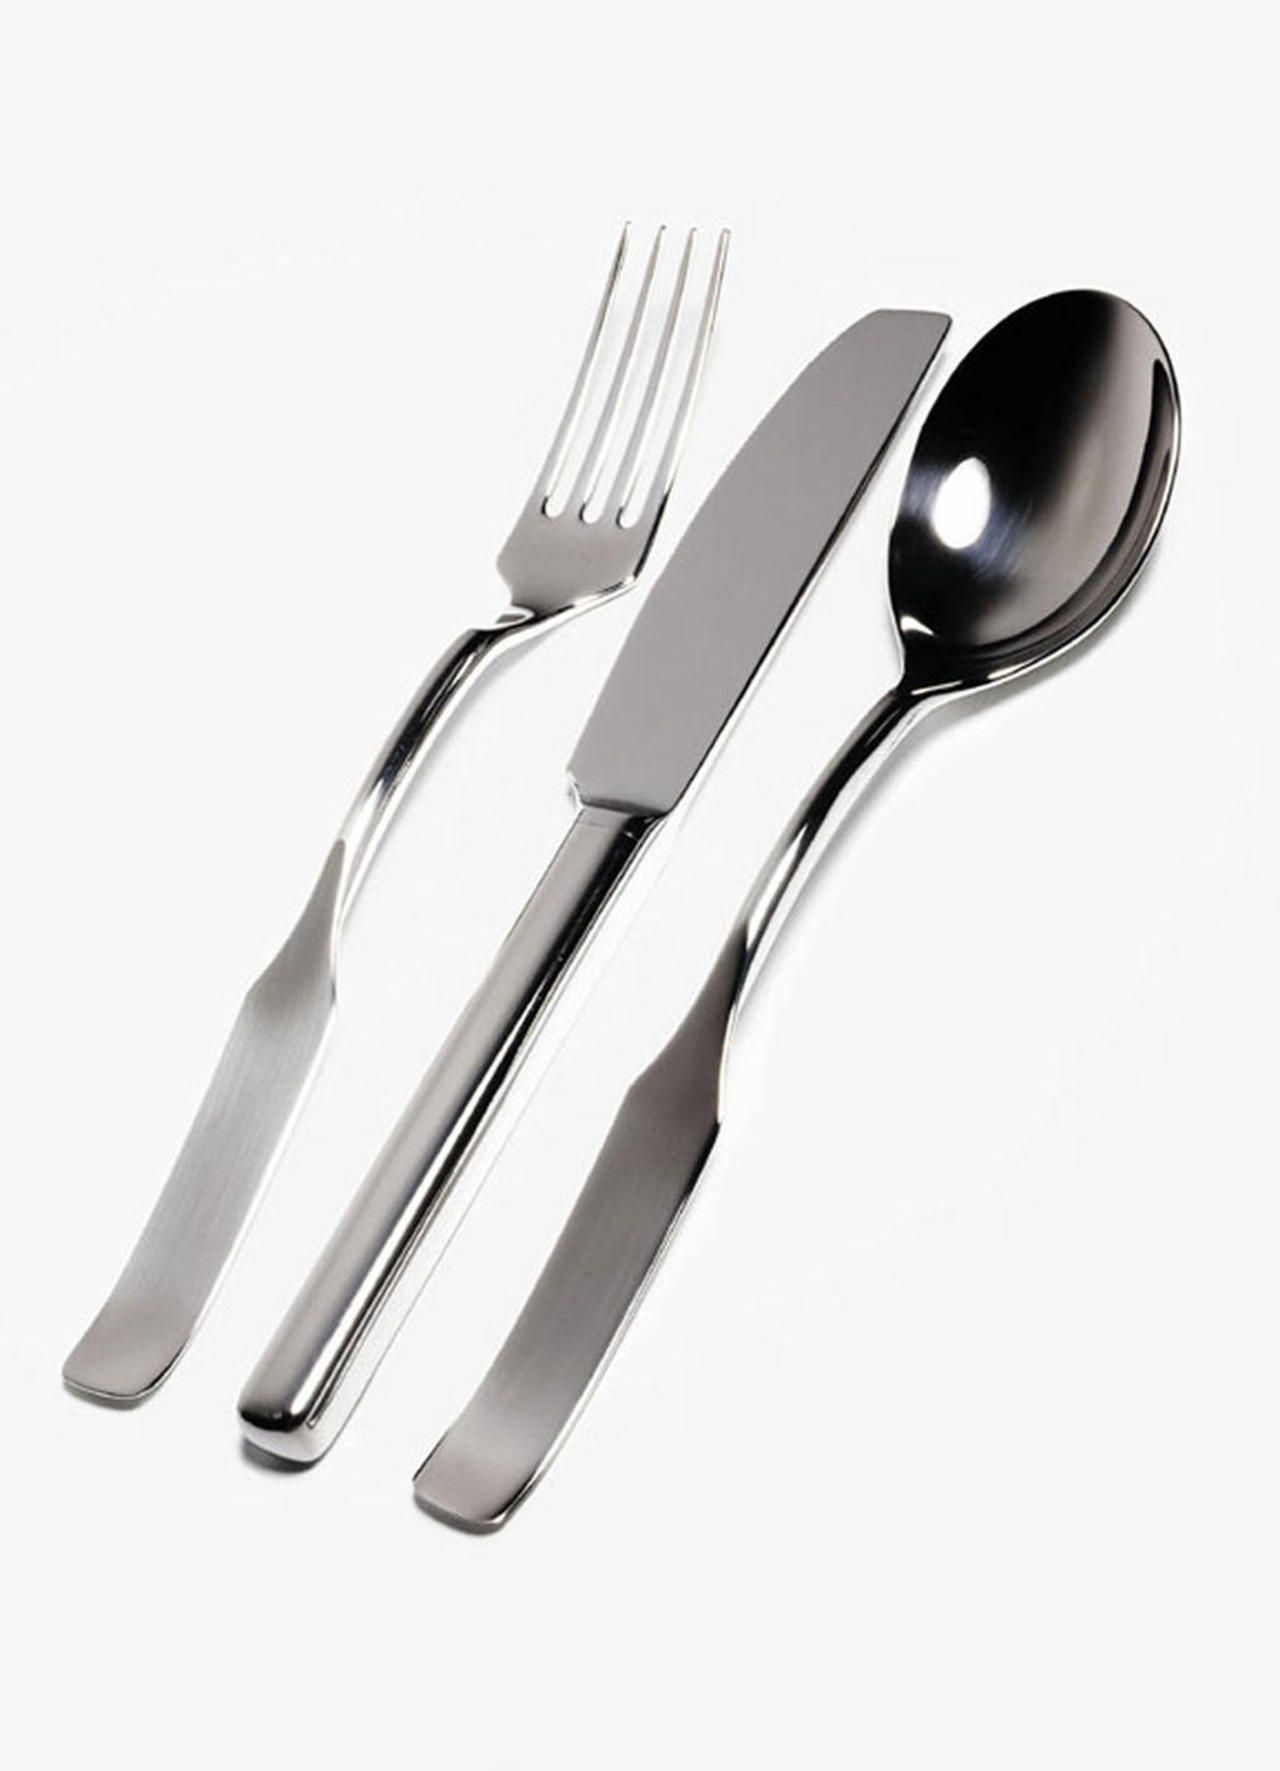 Alessi Silverware Richard Sapper Rs01 1995 Product Cutlery Cutlery